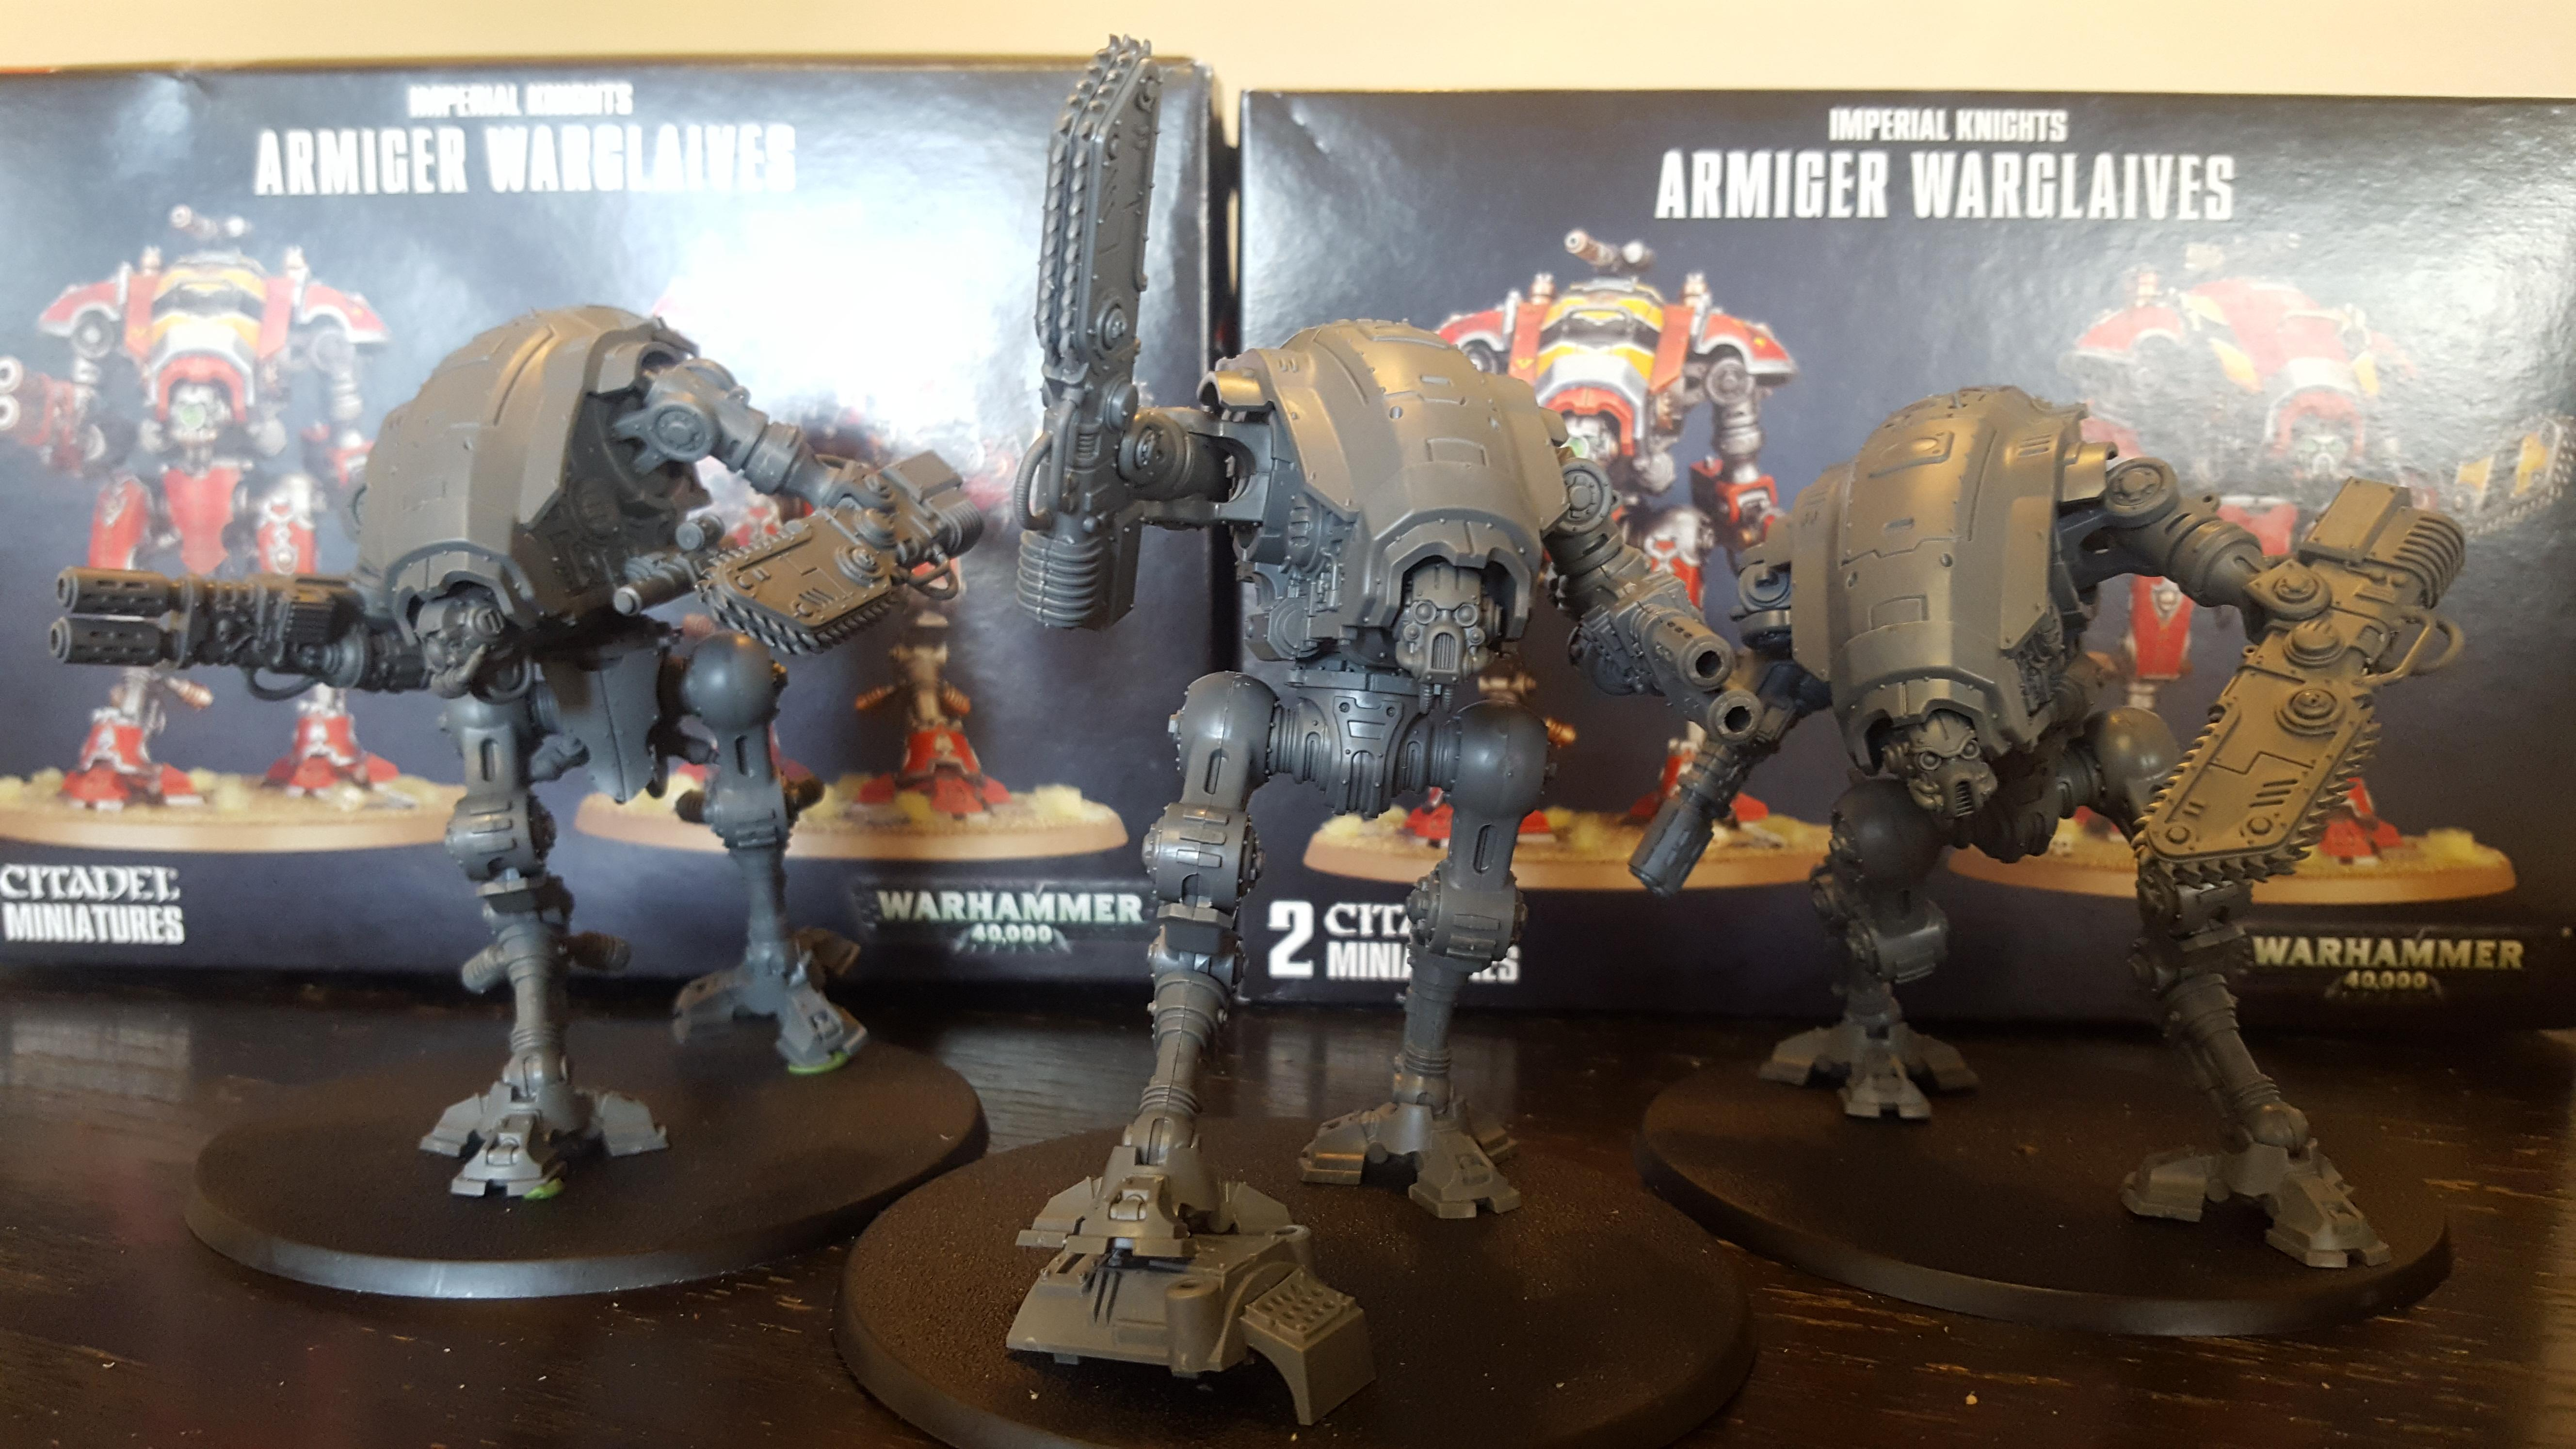 Armiger, Cool, Dynamic, Imperial Knight, Pose, Warglaive